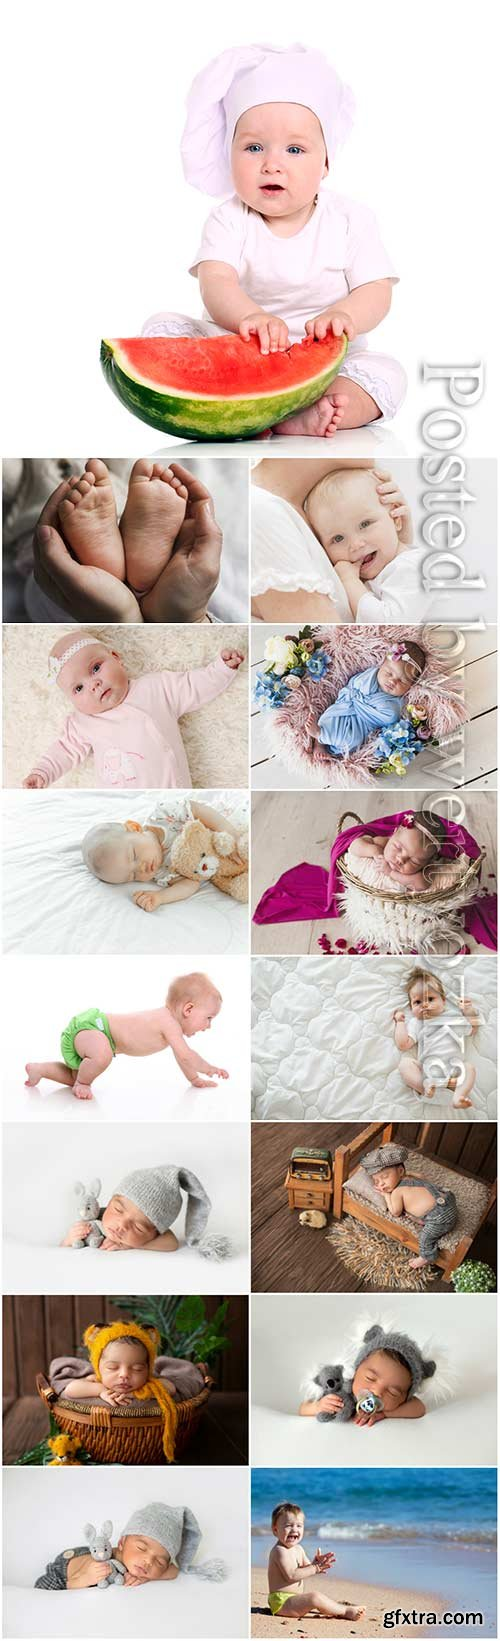 Little kids stock photo set